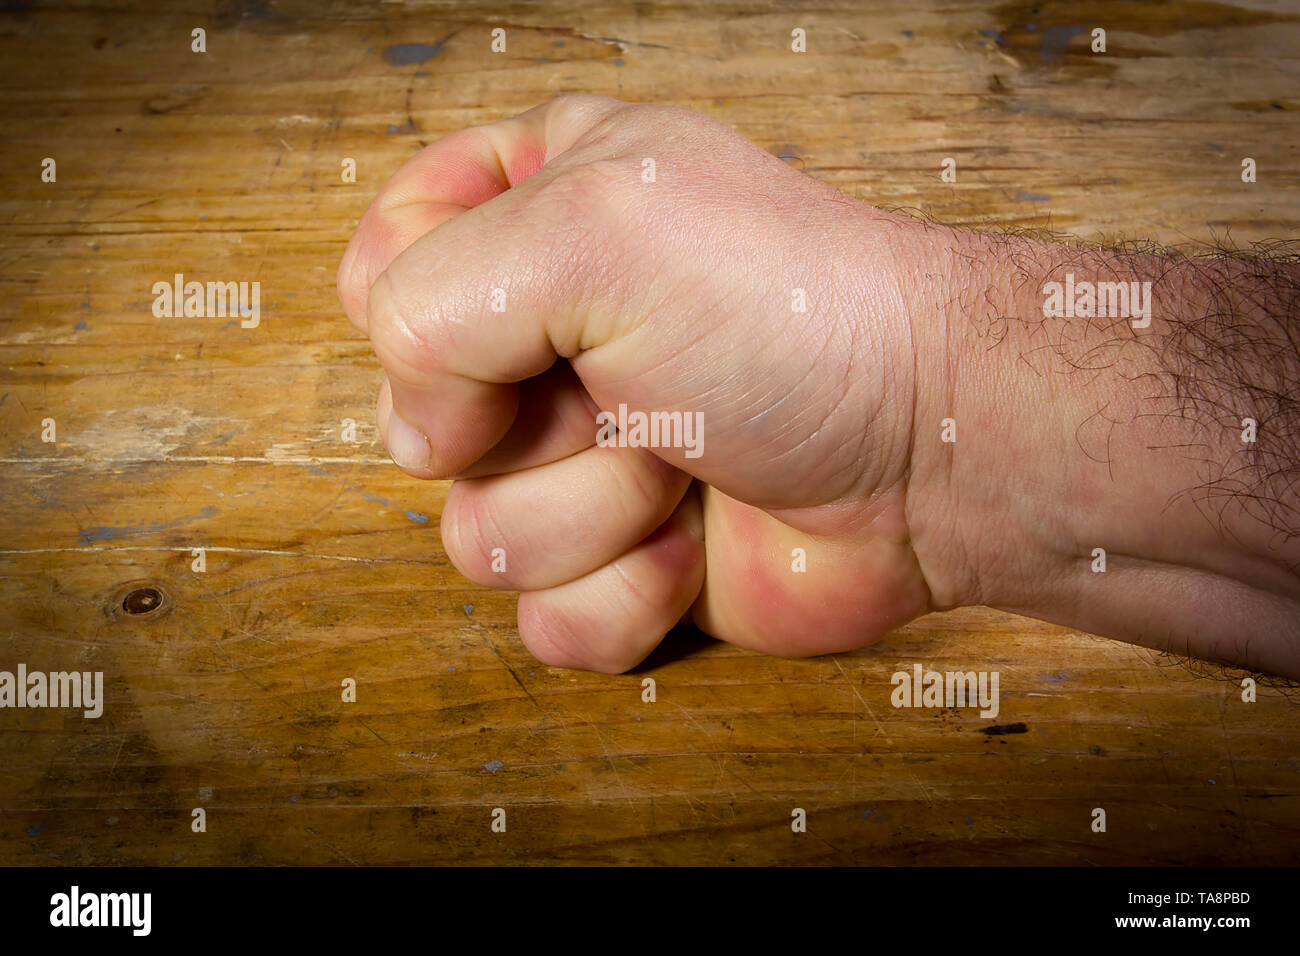 Male hand clenched into a fist on a wooden table. Stock Photo